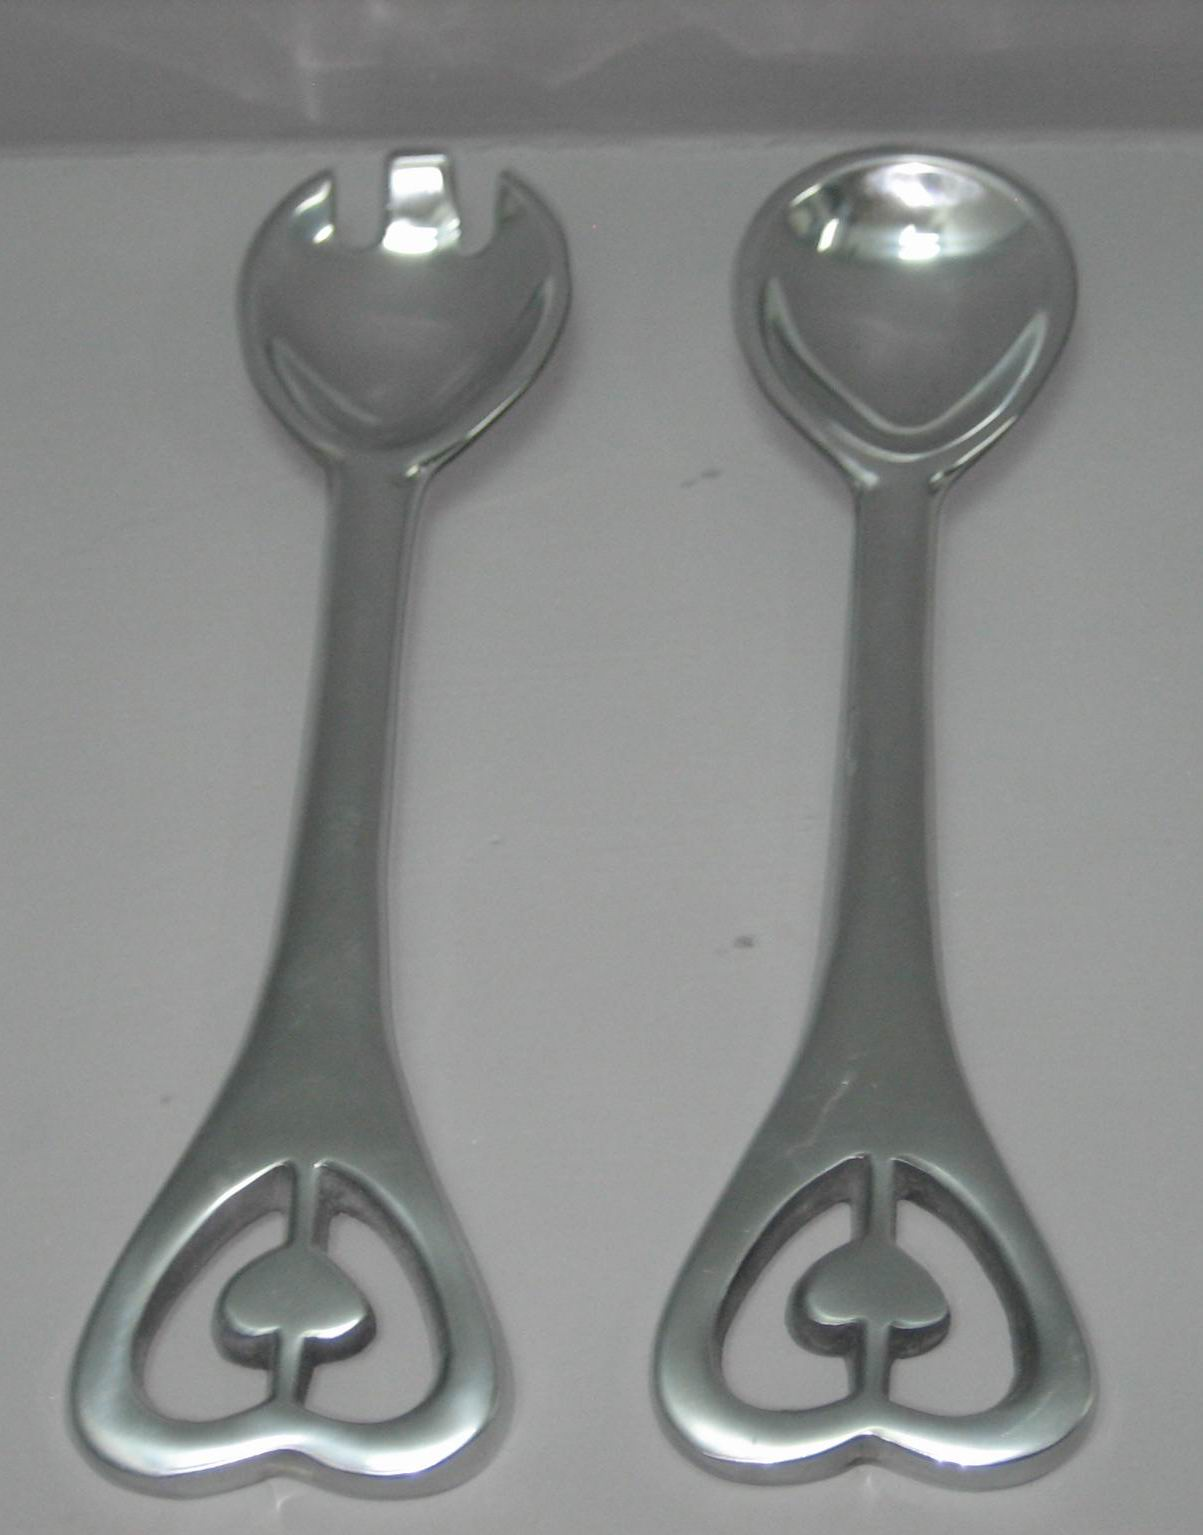 Serving Spoons (AGHTSS 002)